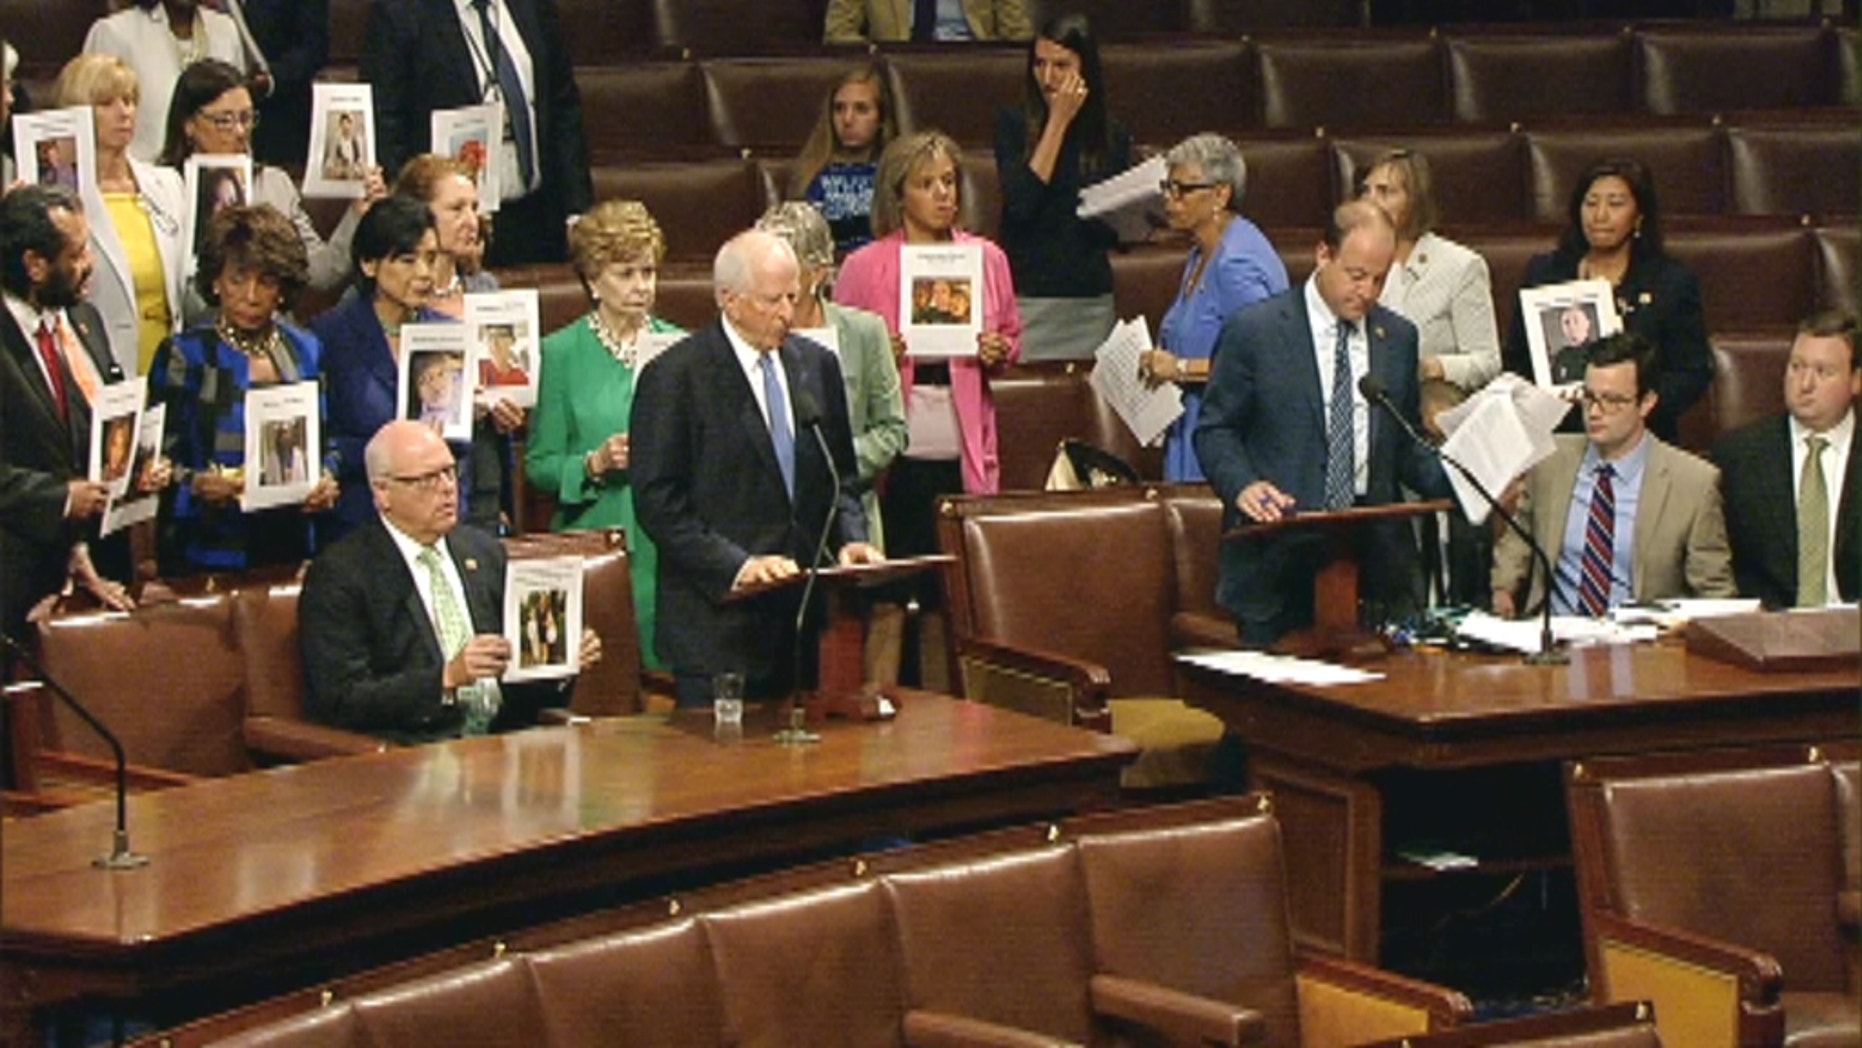 July 7, 2016: Democrats protest gun violence on the House floor.